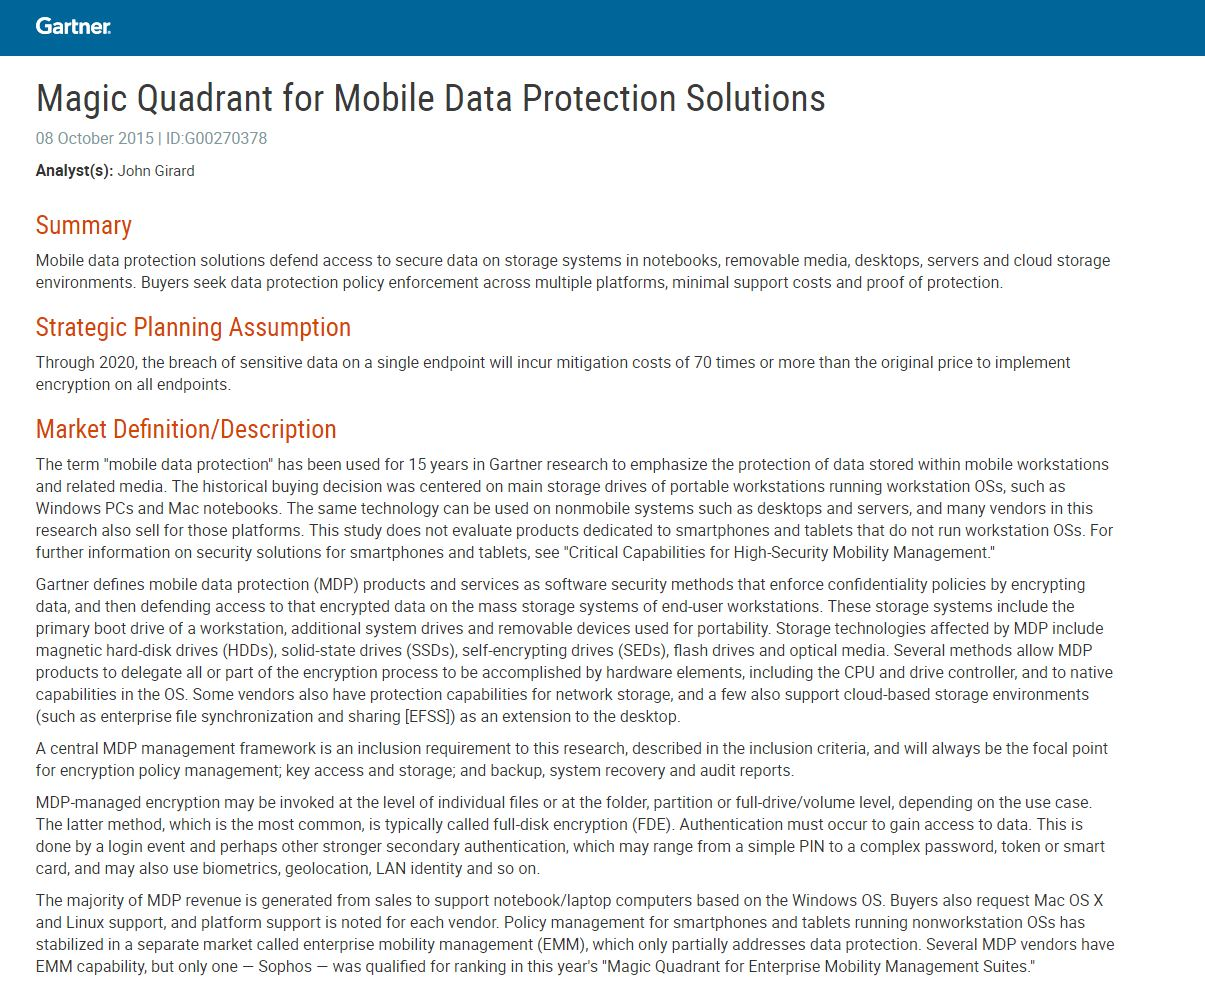 Magic Quadrant for Mobile Data Protection Solutions